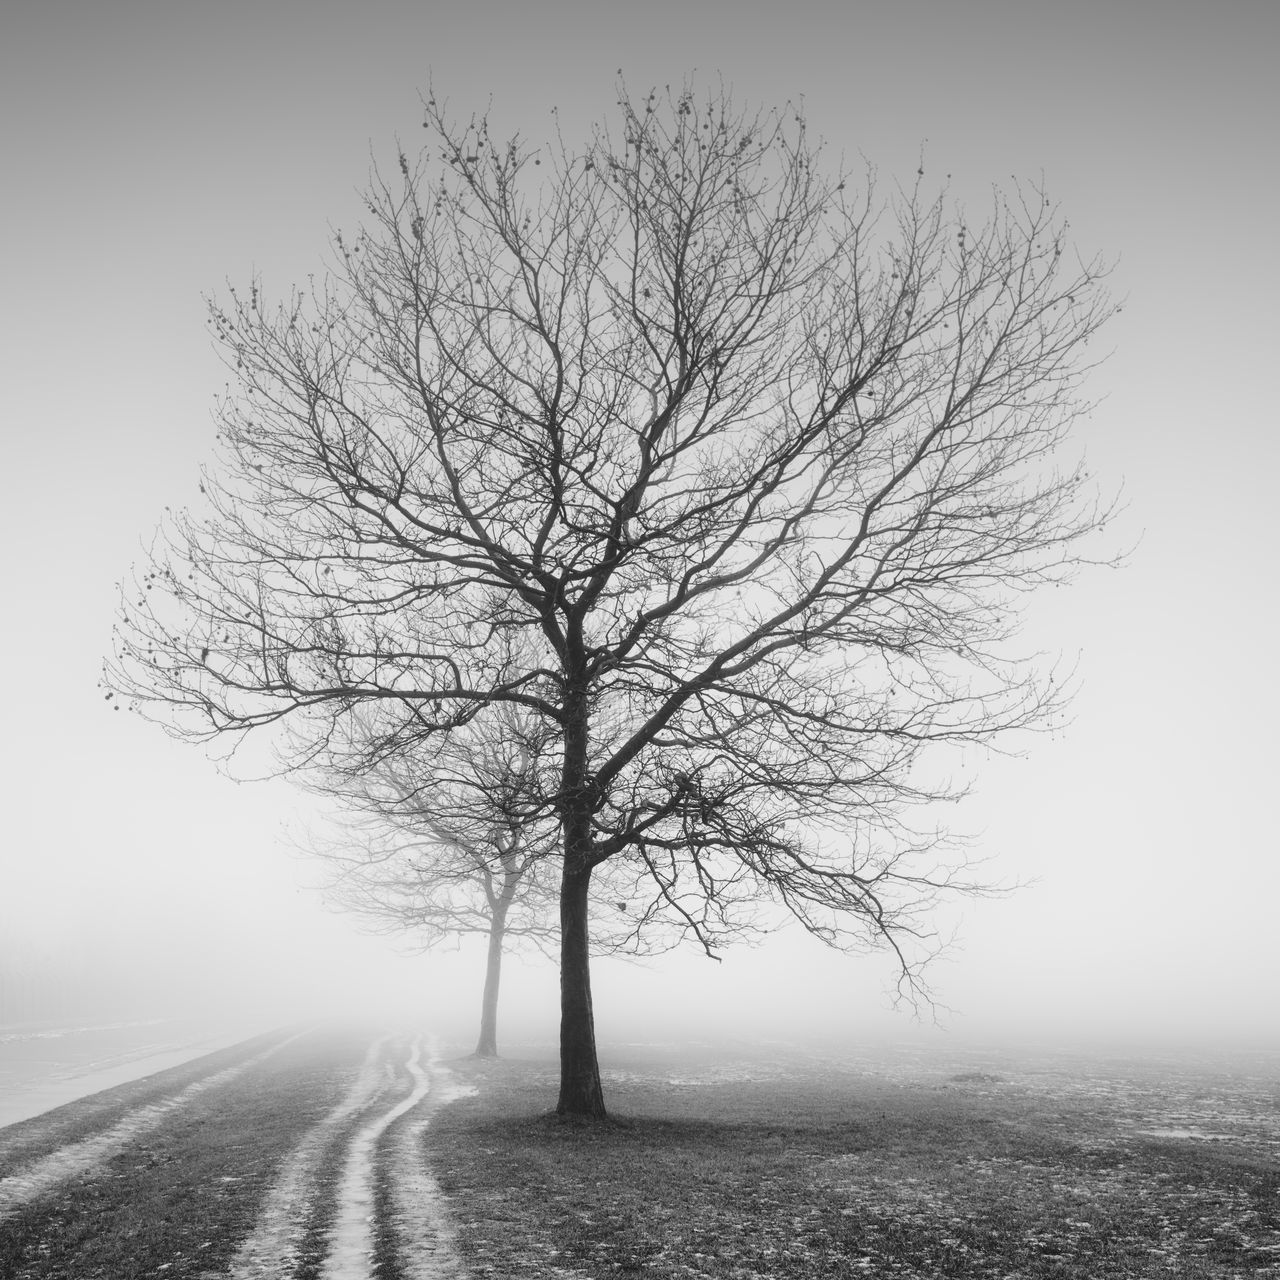 barren trees on a winter field Bare Tree Beauty In Nature Berlin Berliner Ansichten Black And White Black And White Photography Bnw Cold Temperature Day Fog Landscape Long Exposure Minimalism Monochrome Nature No People Outdoors Philipp Dase Scenics Spooky Tempelhofer Feld Tree Winter